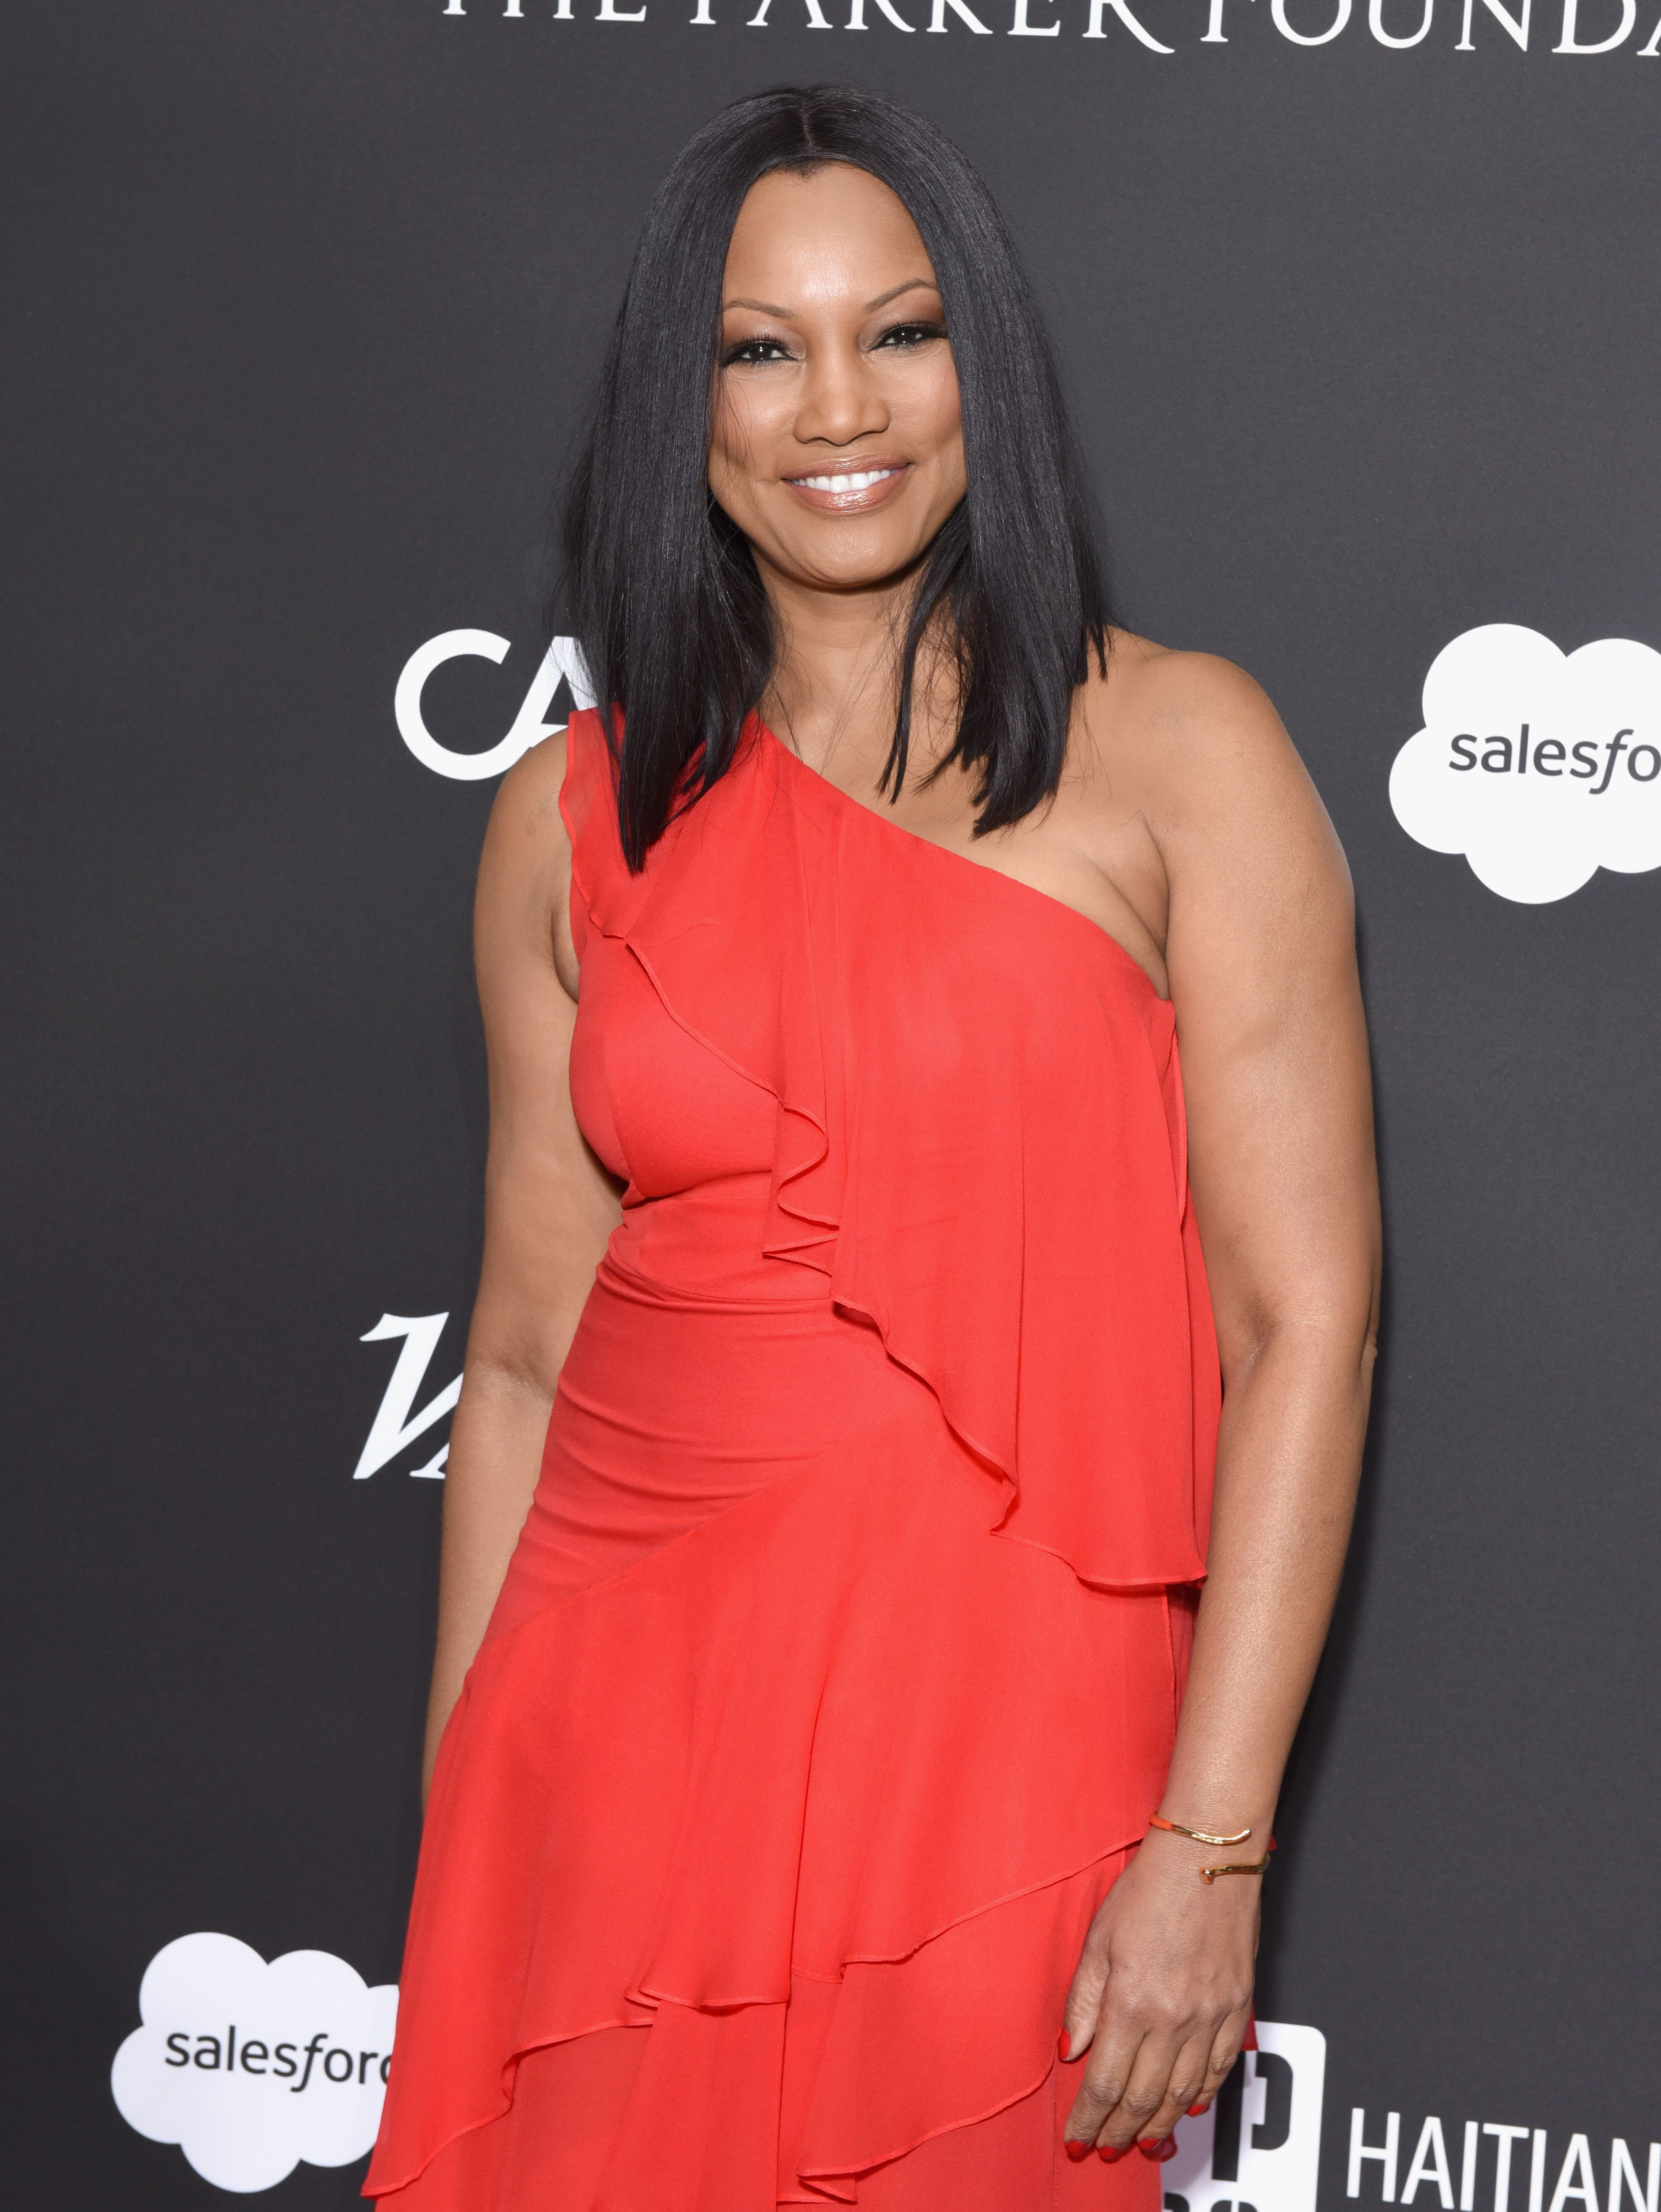 Garcelle Beauvais at the 7th Annual Sean Penn & Friends HAITI RISING Gala on January 6, 2018 in Hollywood, California | Source: Getty Images